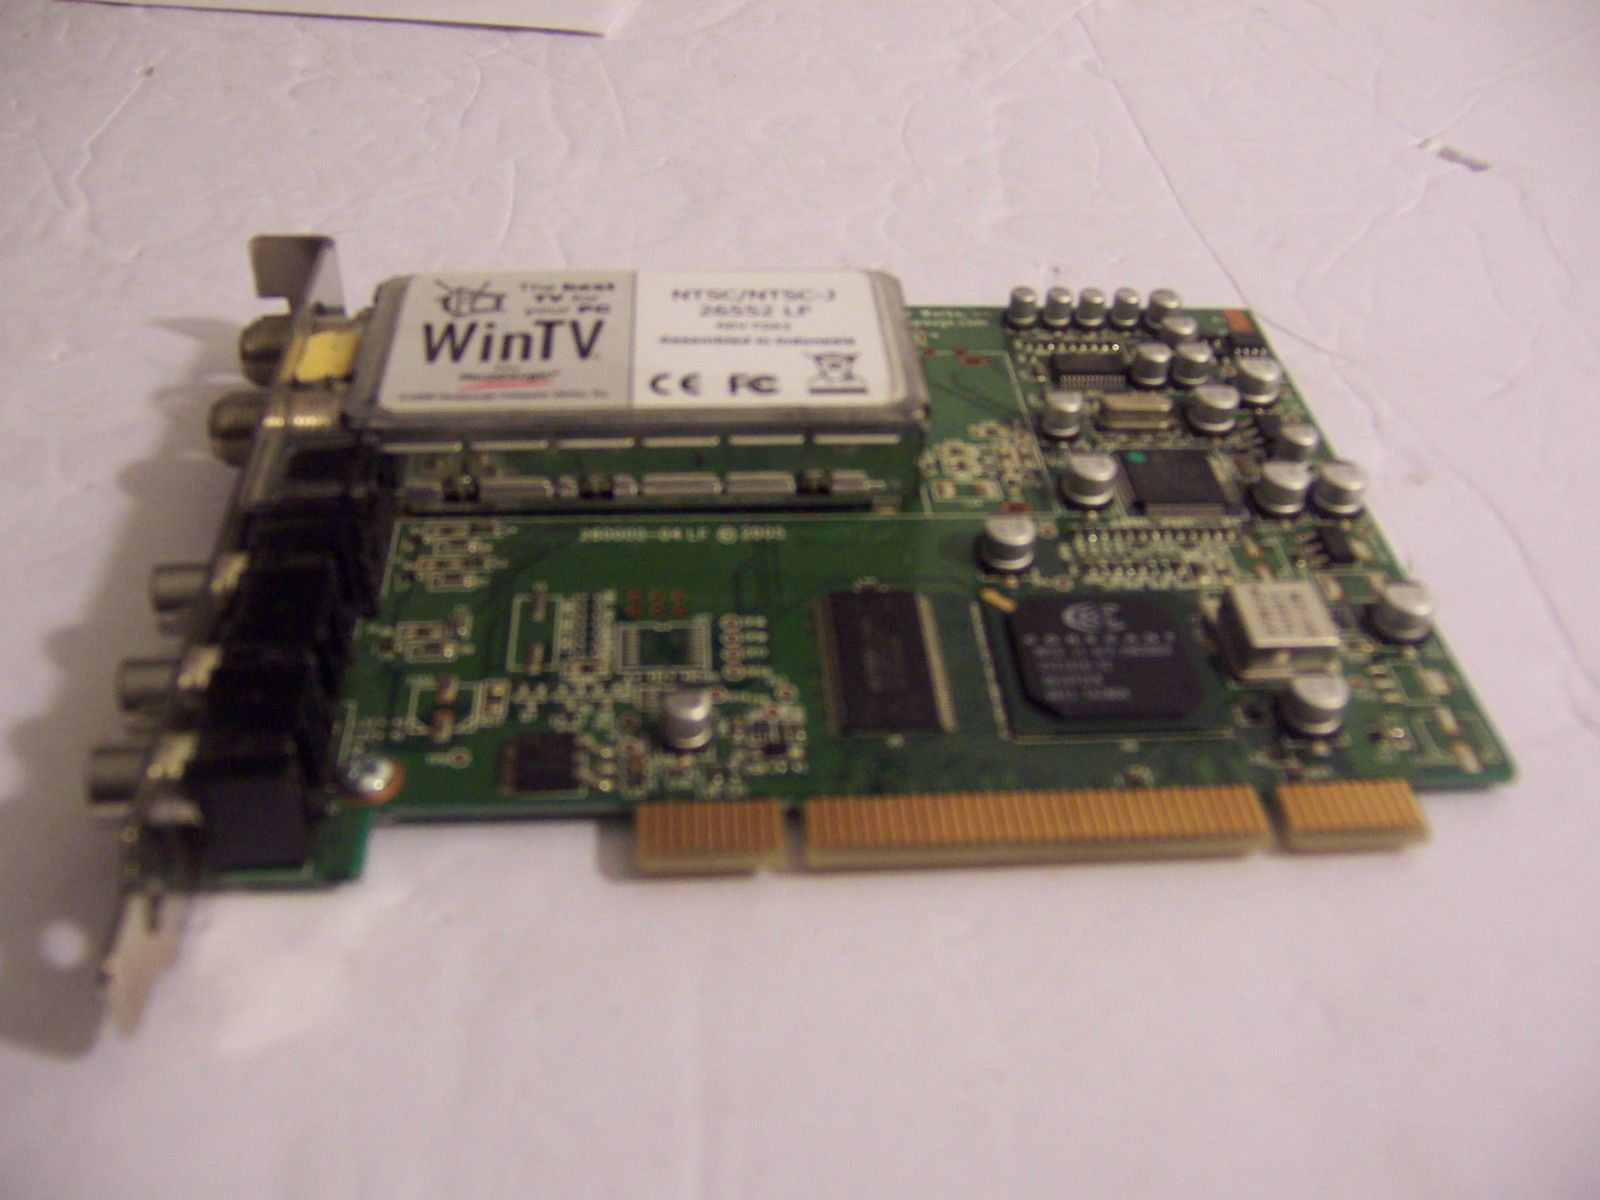 New Hauppauge HP WinTV 260000-04 PVR-150 MCE and 50 similar